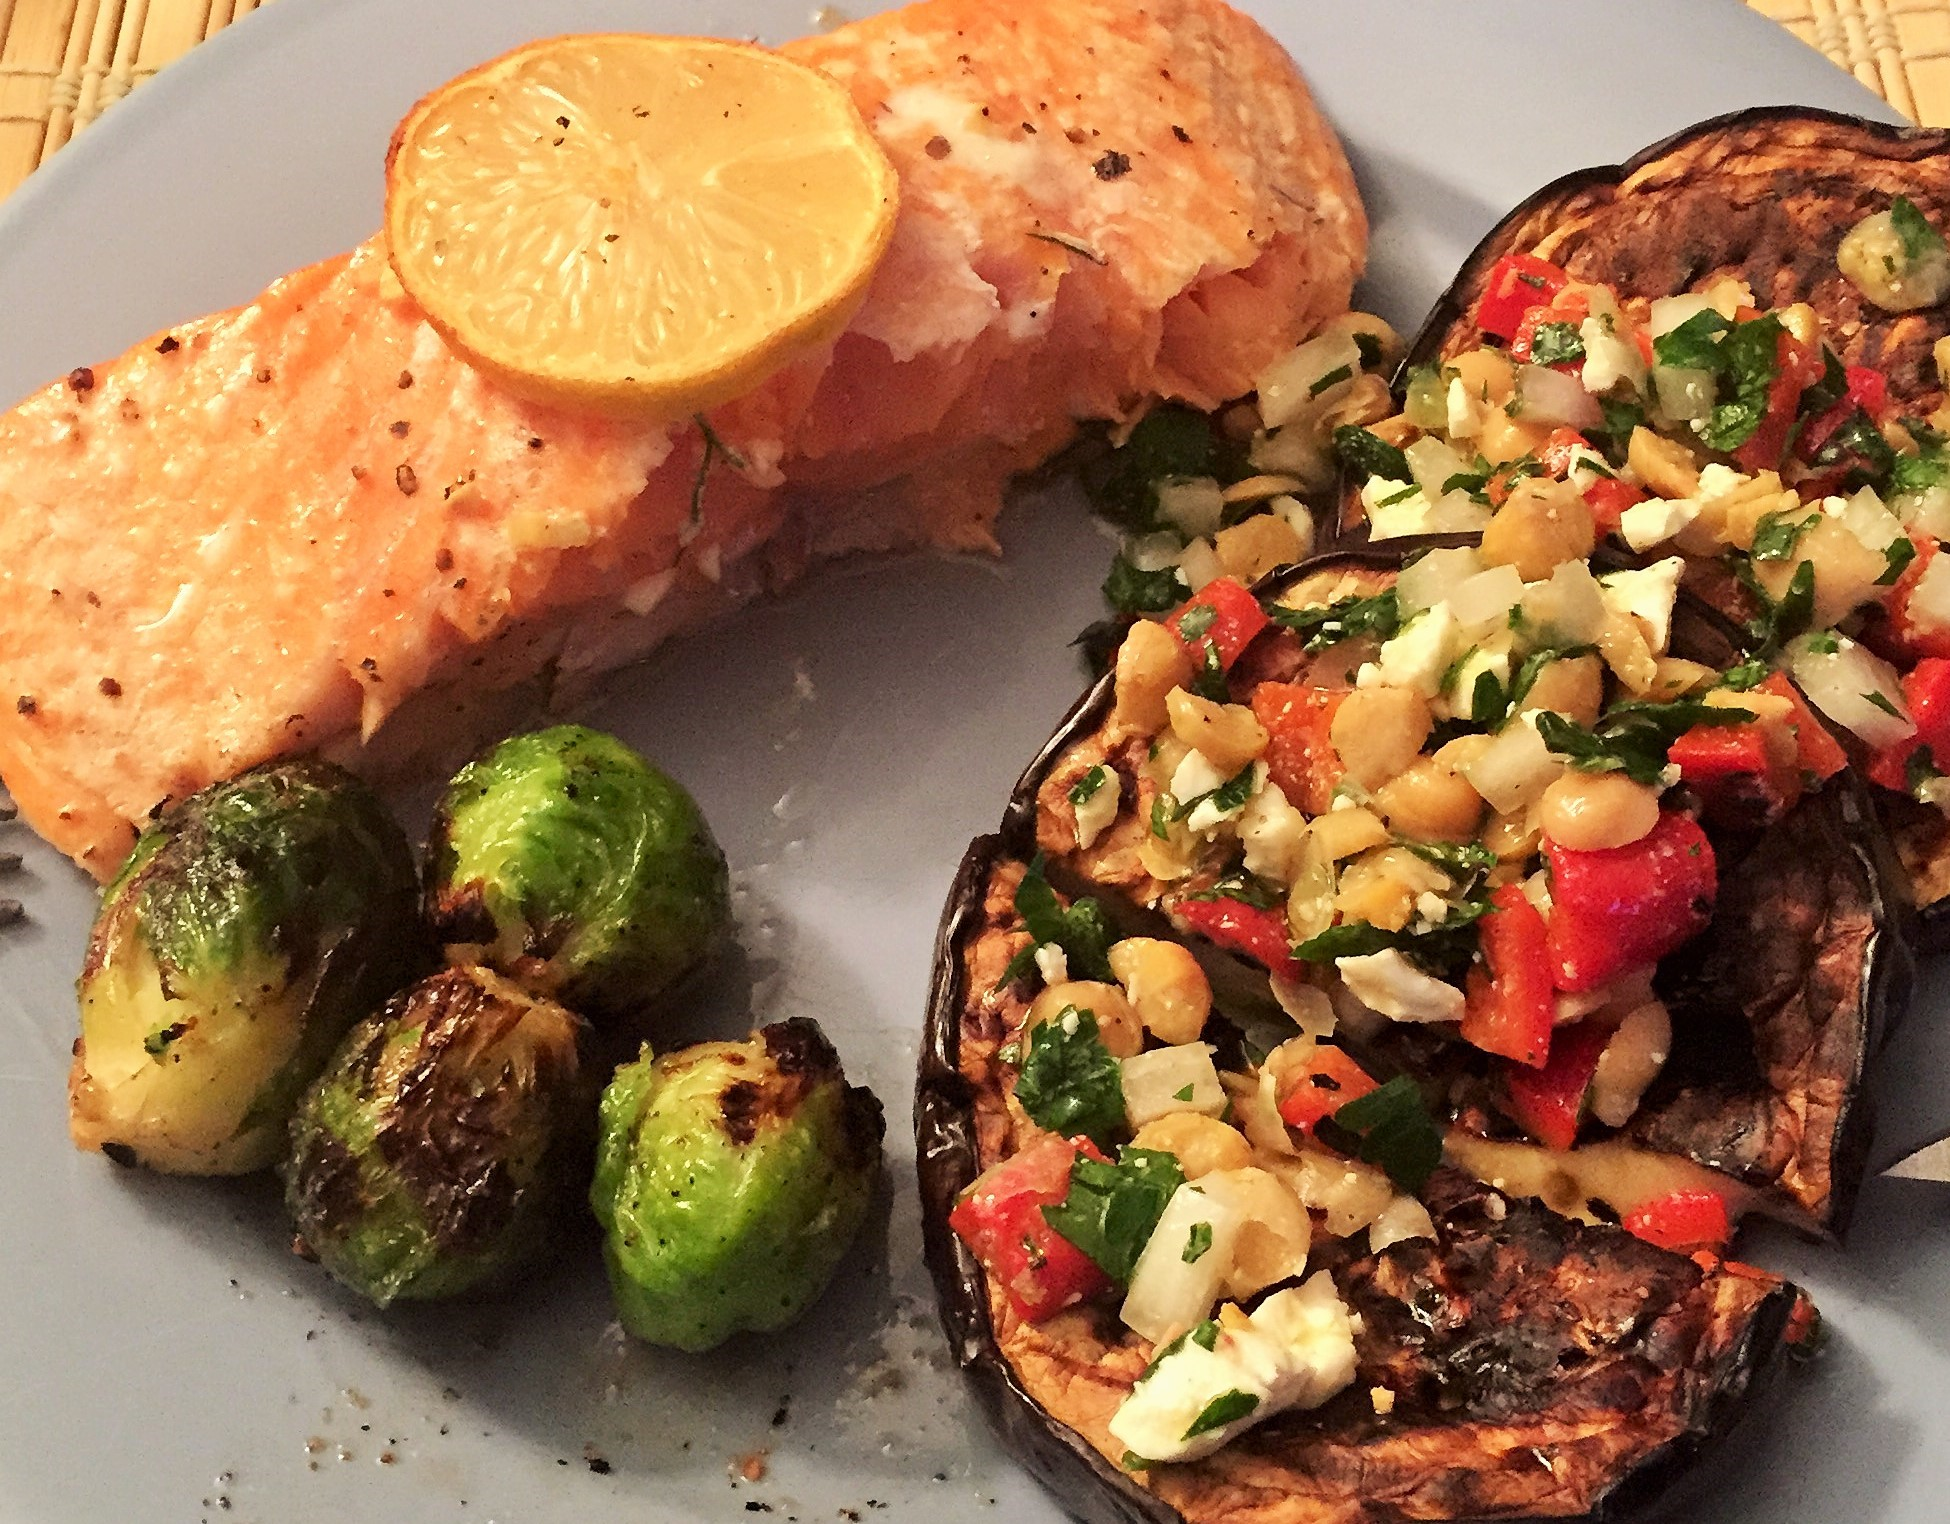 Note: This is NOT the first meal he cooked for me, but a different salmon-focused meal he made, along with roasted brussel sprouts and eggplant topped with a chickpea, tomato and feta salad.